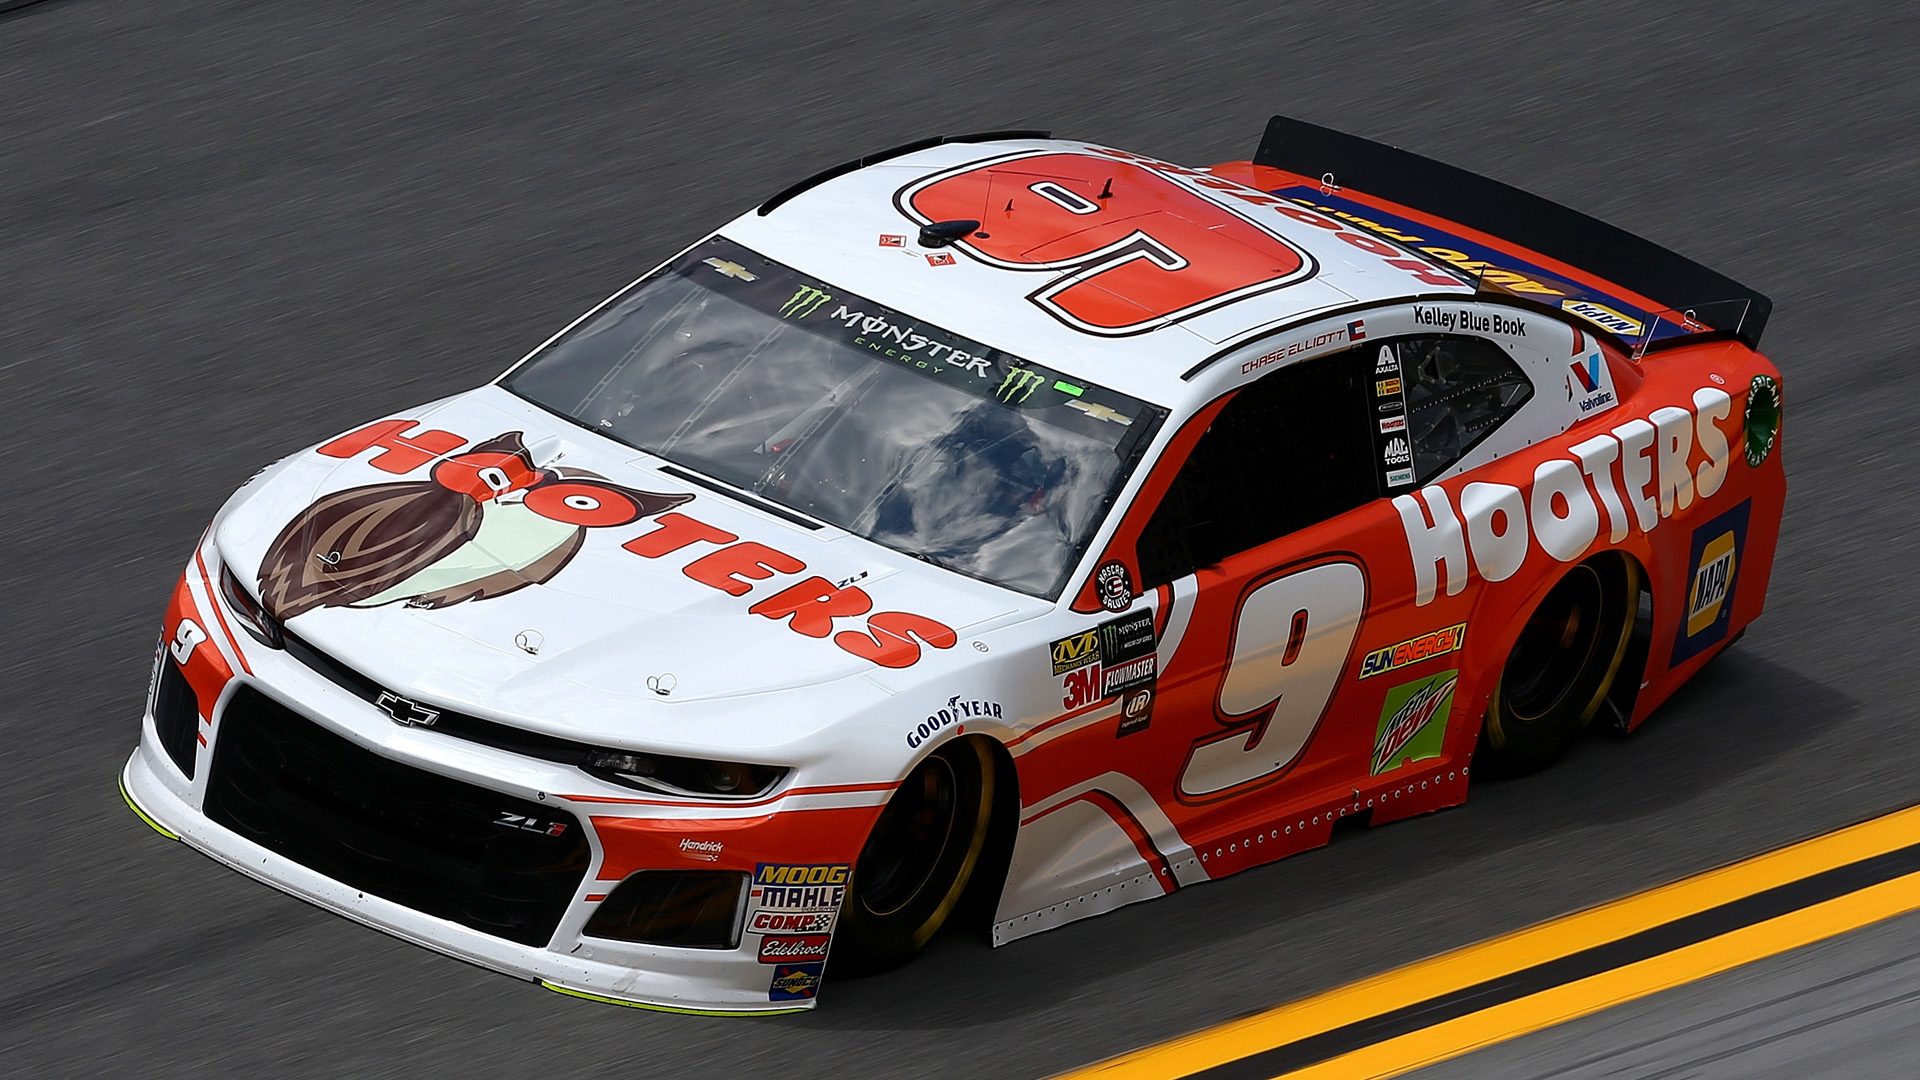 NASCAR starting lineup at Daytona: Chase Elliott on pole; Alex Bowman will start second